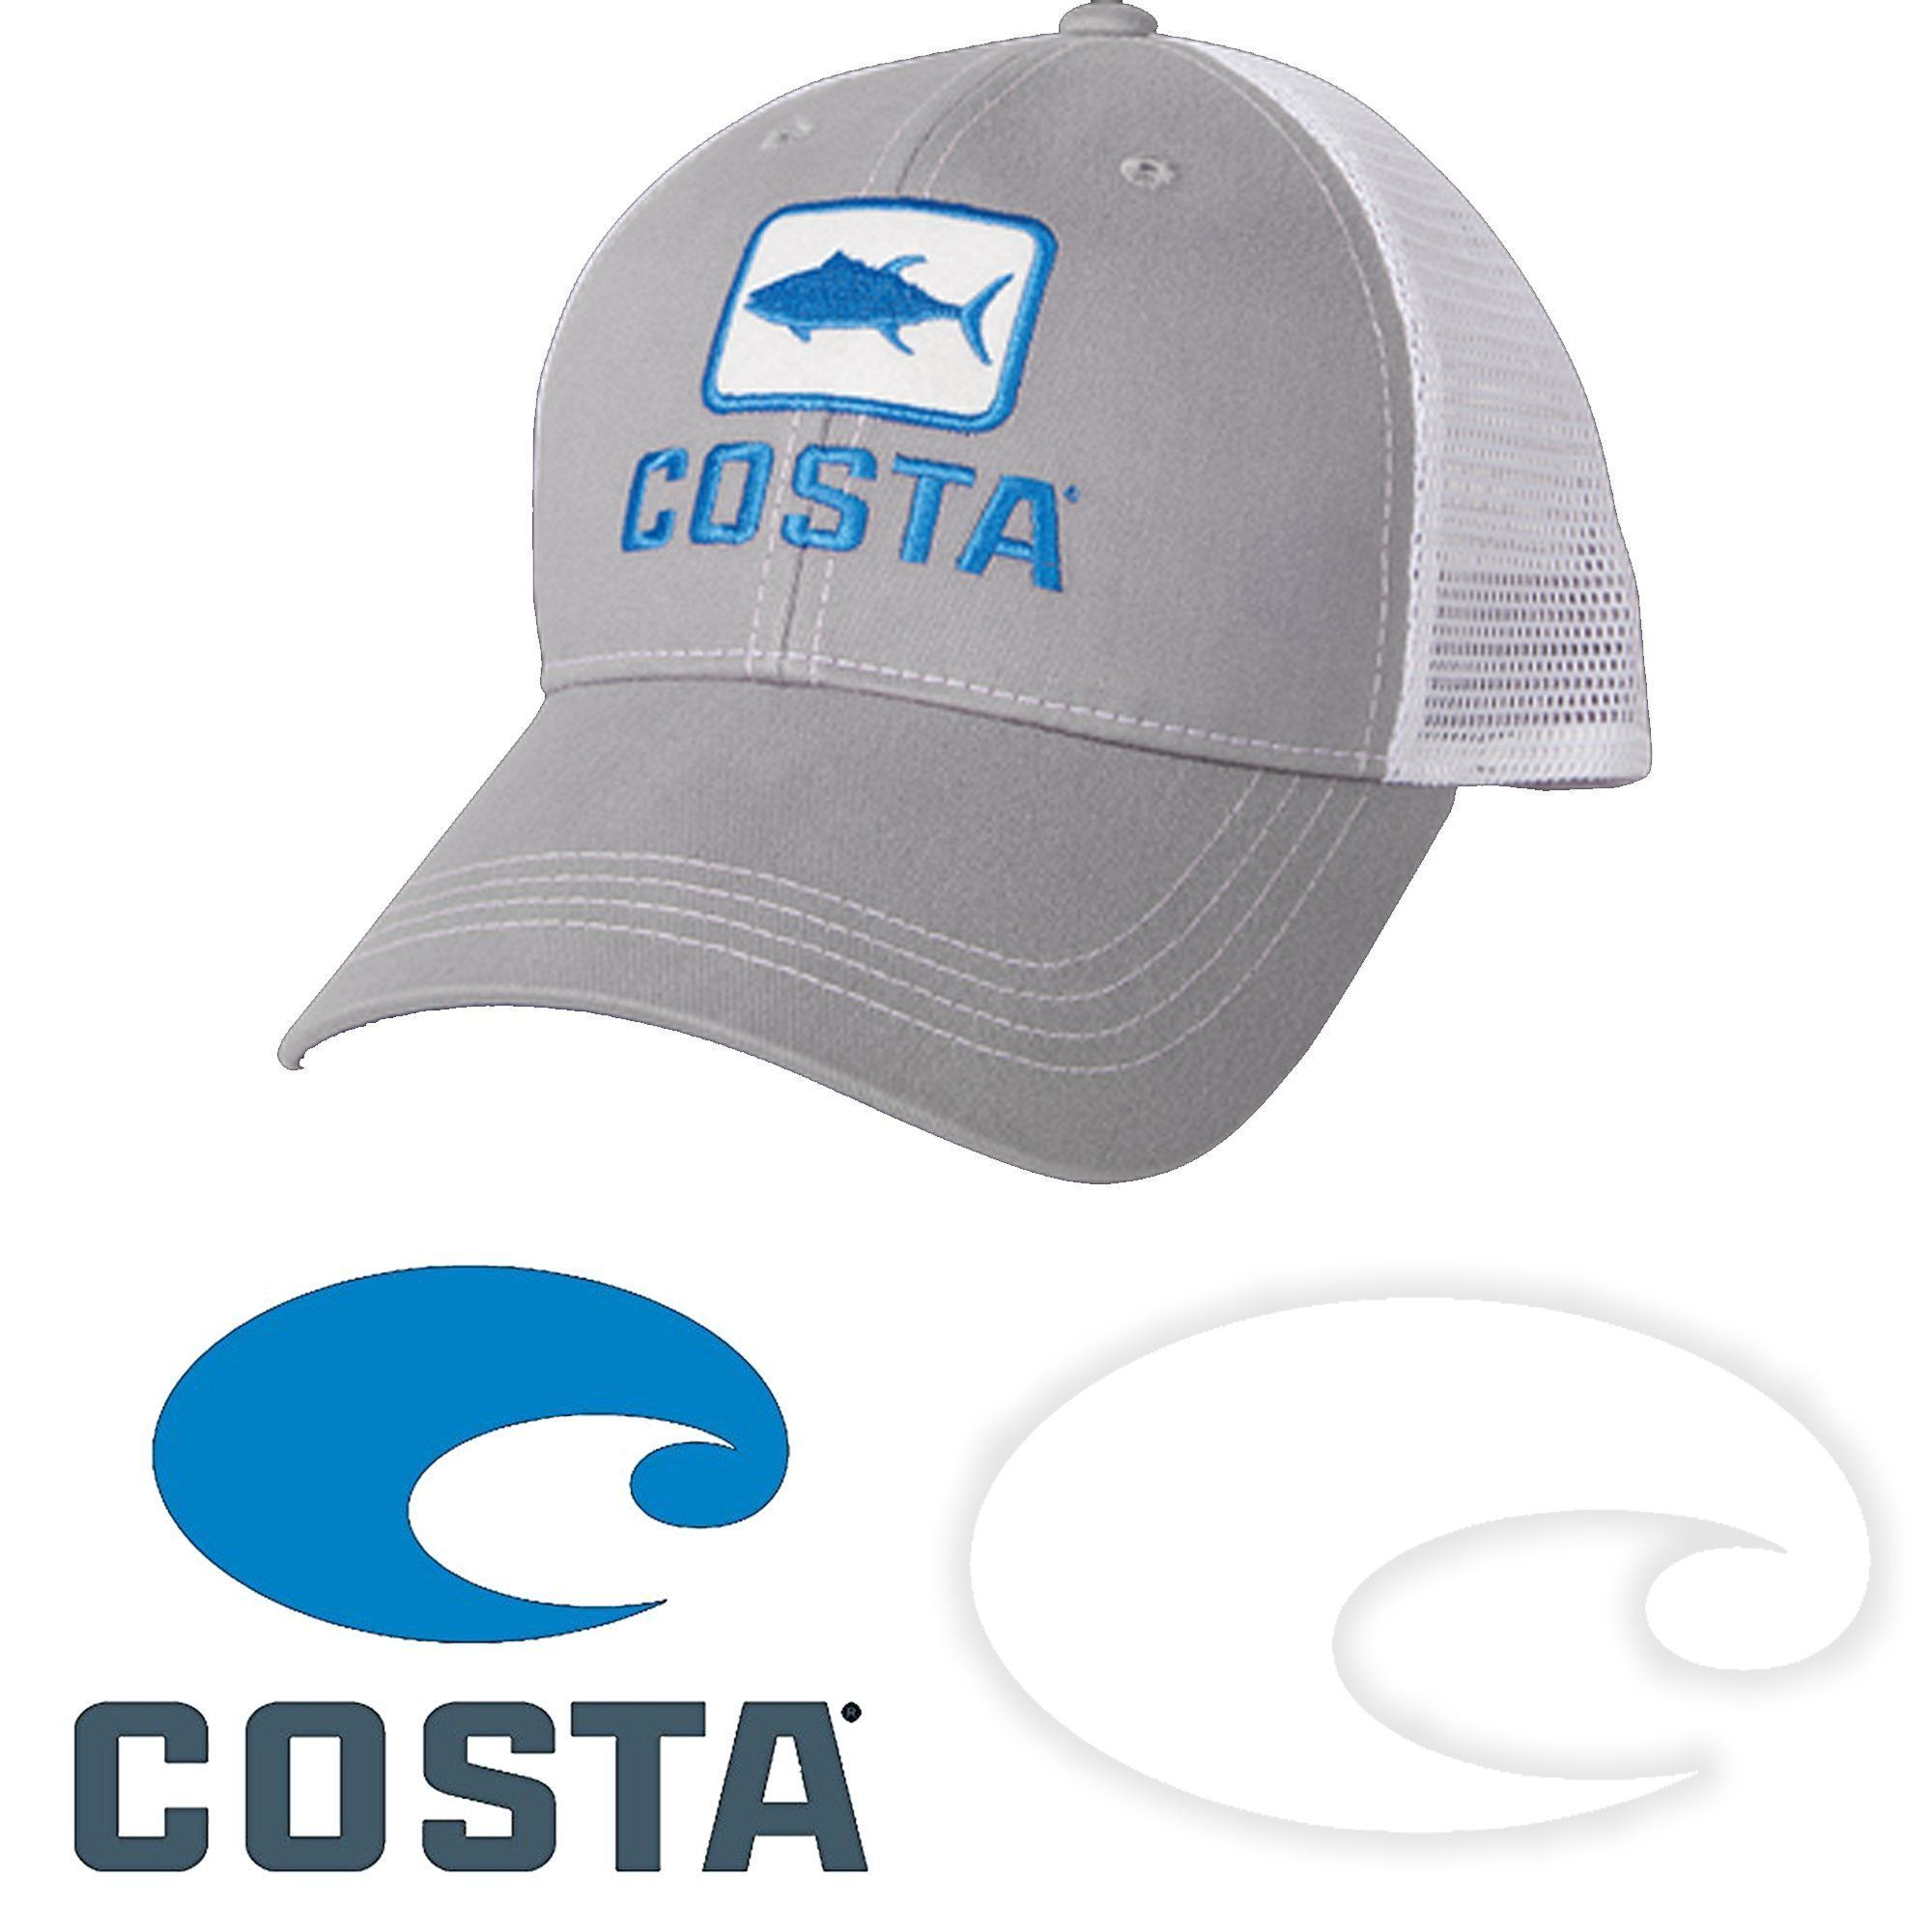 101f54a947333 Costa Del Mar Tuna Trucker Hat and Costa Decal Stickers Pack ...